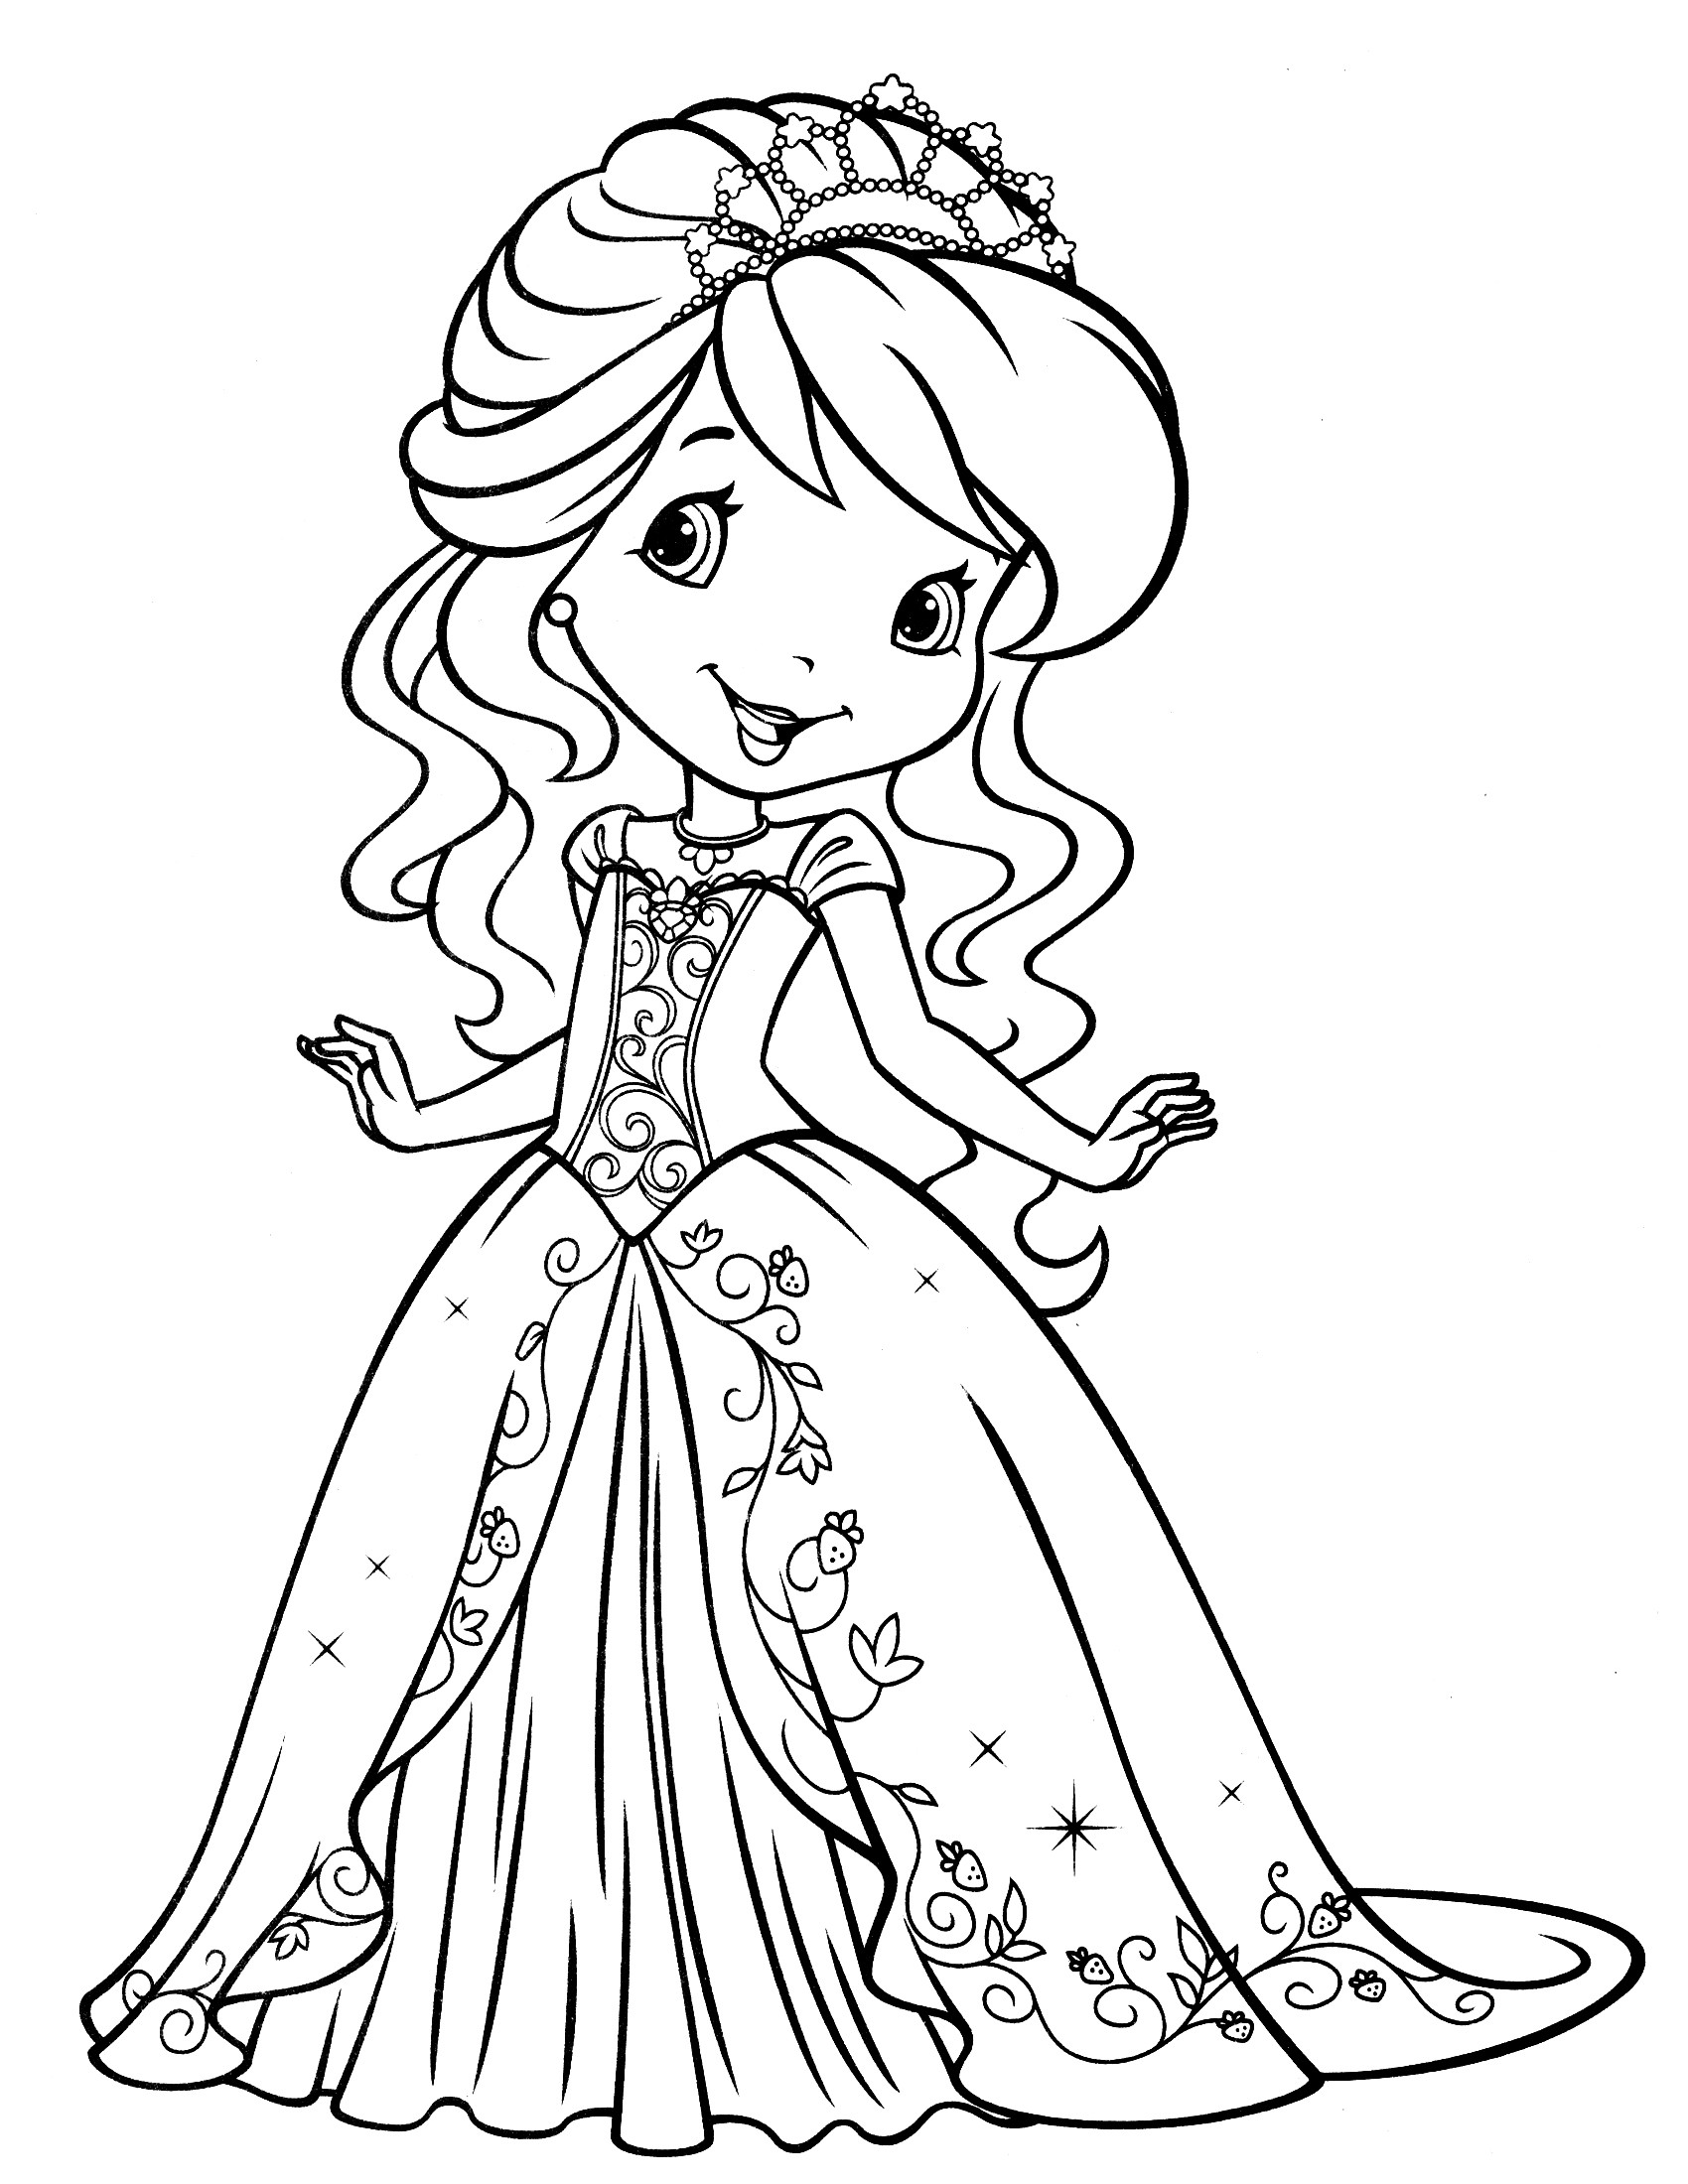 Best ideas about Coloring Pages For Girls Princess High . Save or Pin American Girl Doll Coloring Pages Bestofcoloring Now.